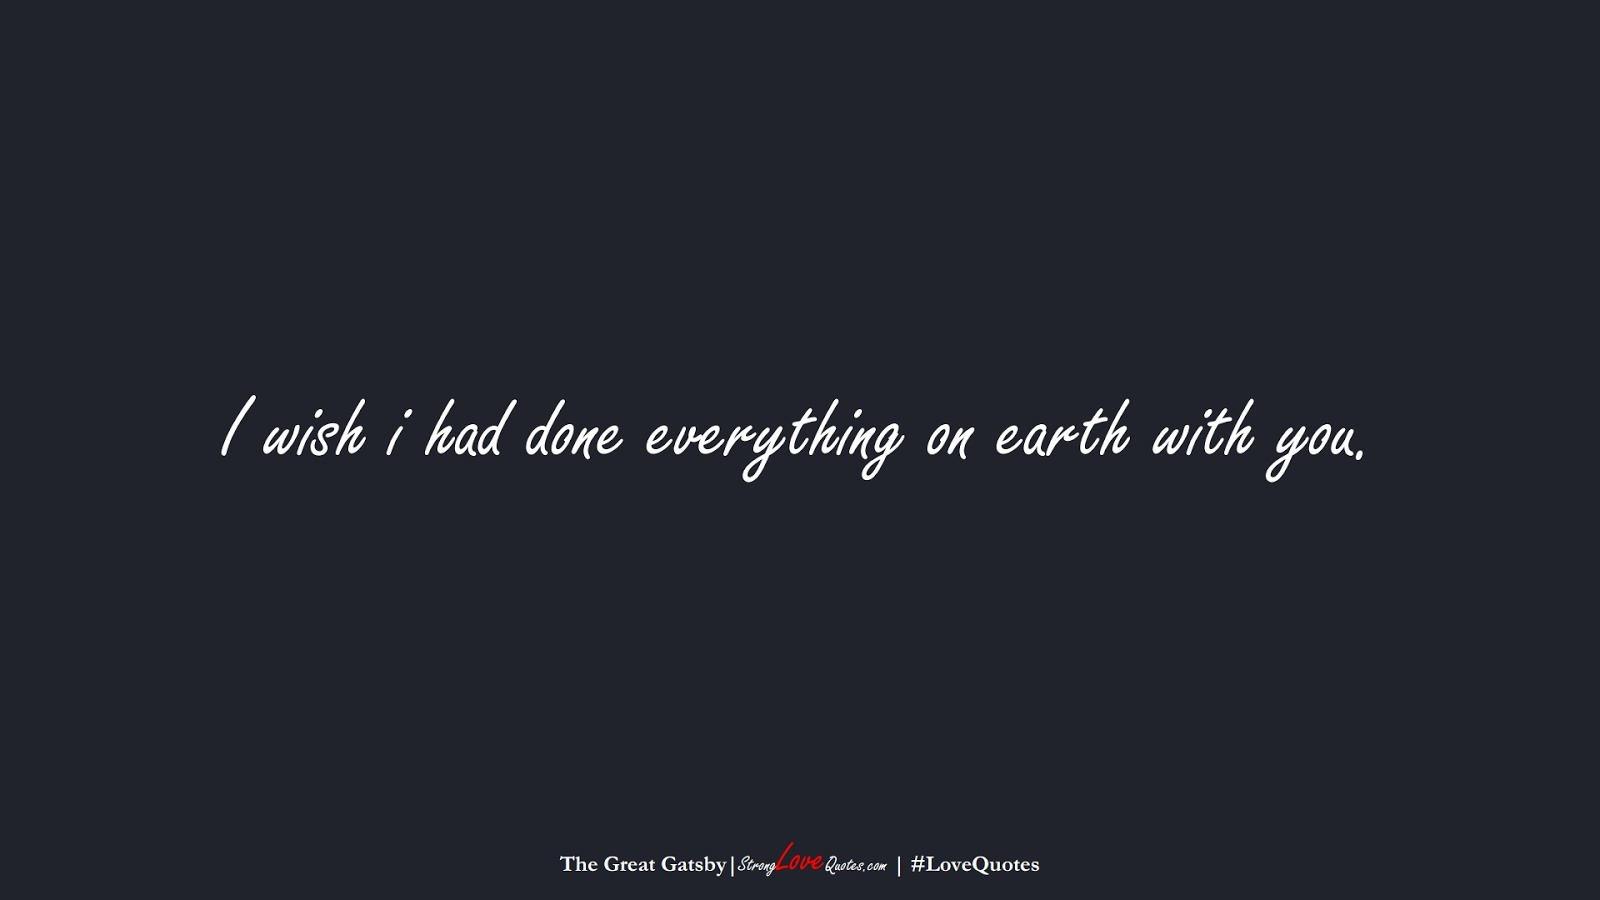 I wish i had done everything on earth with you. (The Great Gatsby);  #LoveQuotes